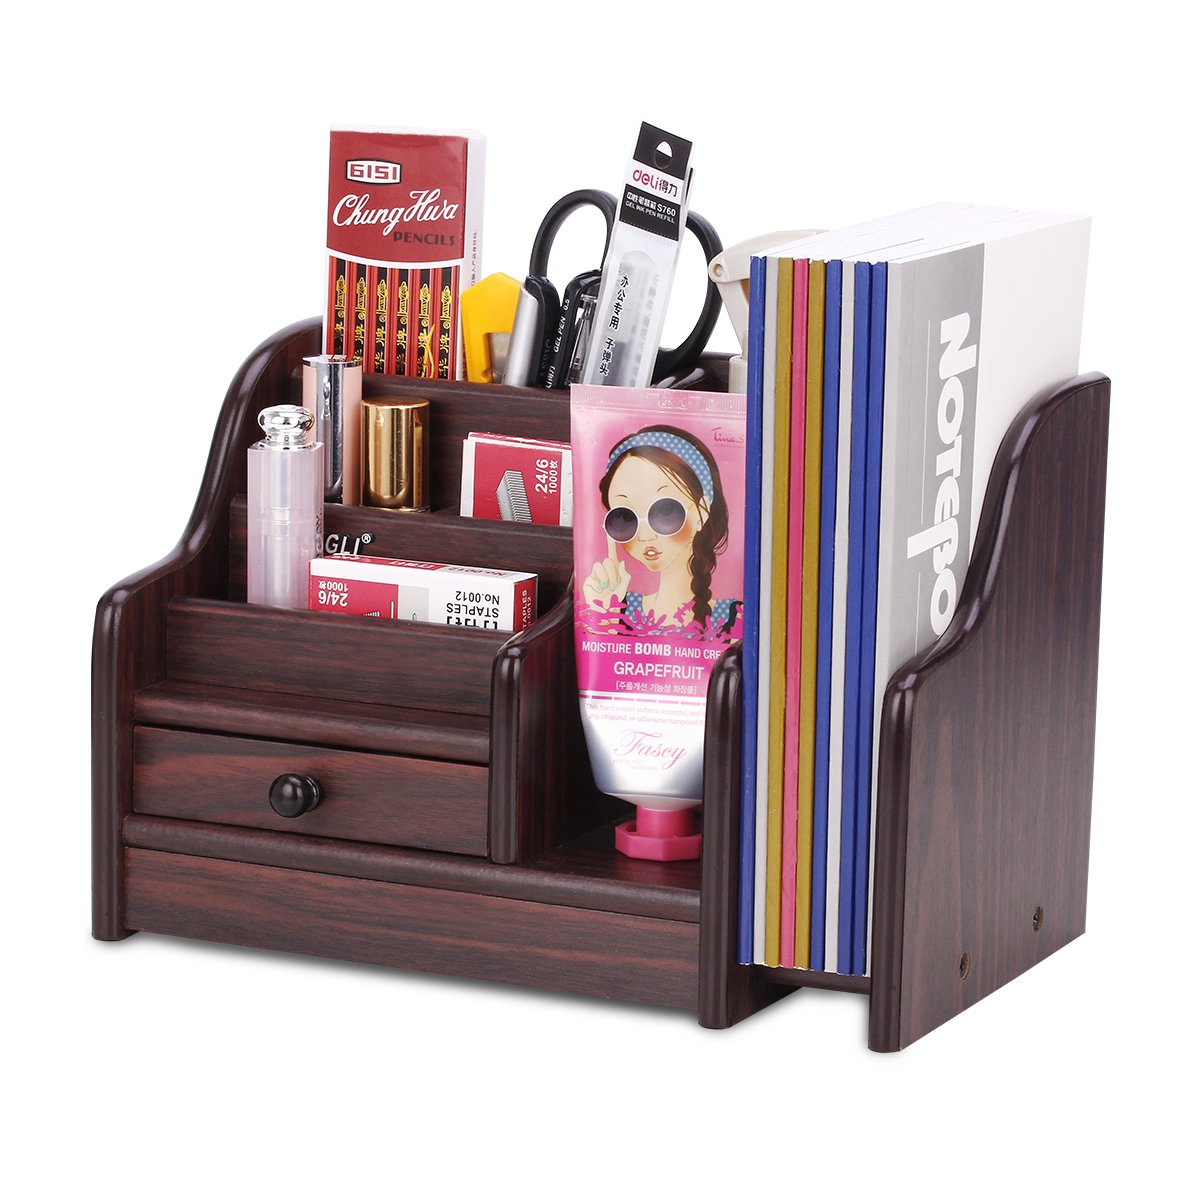 AZDENT Office Supplies Wood Desk Organizer with Drawer Expandable Mail Sorter Desktop Stationary Organizer